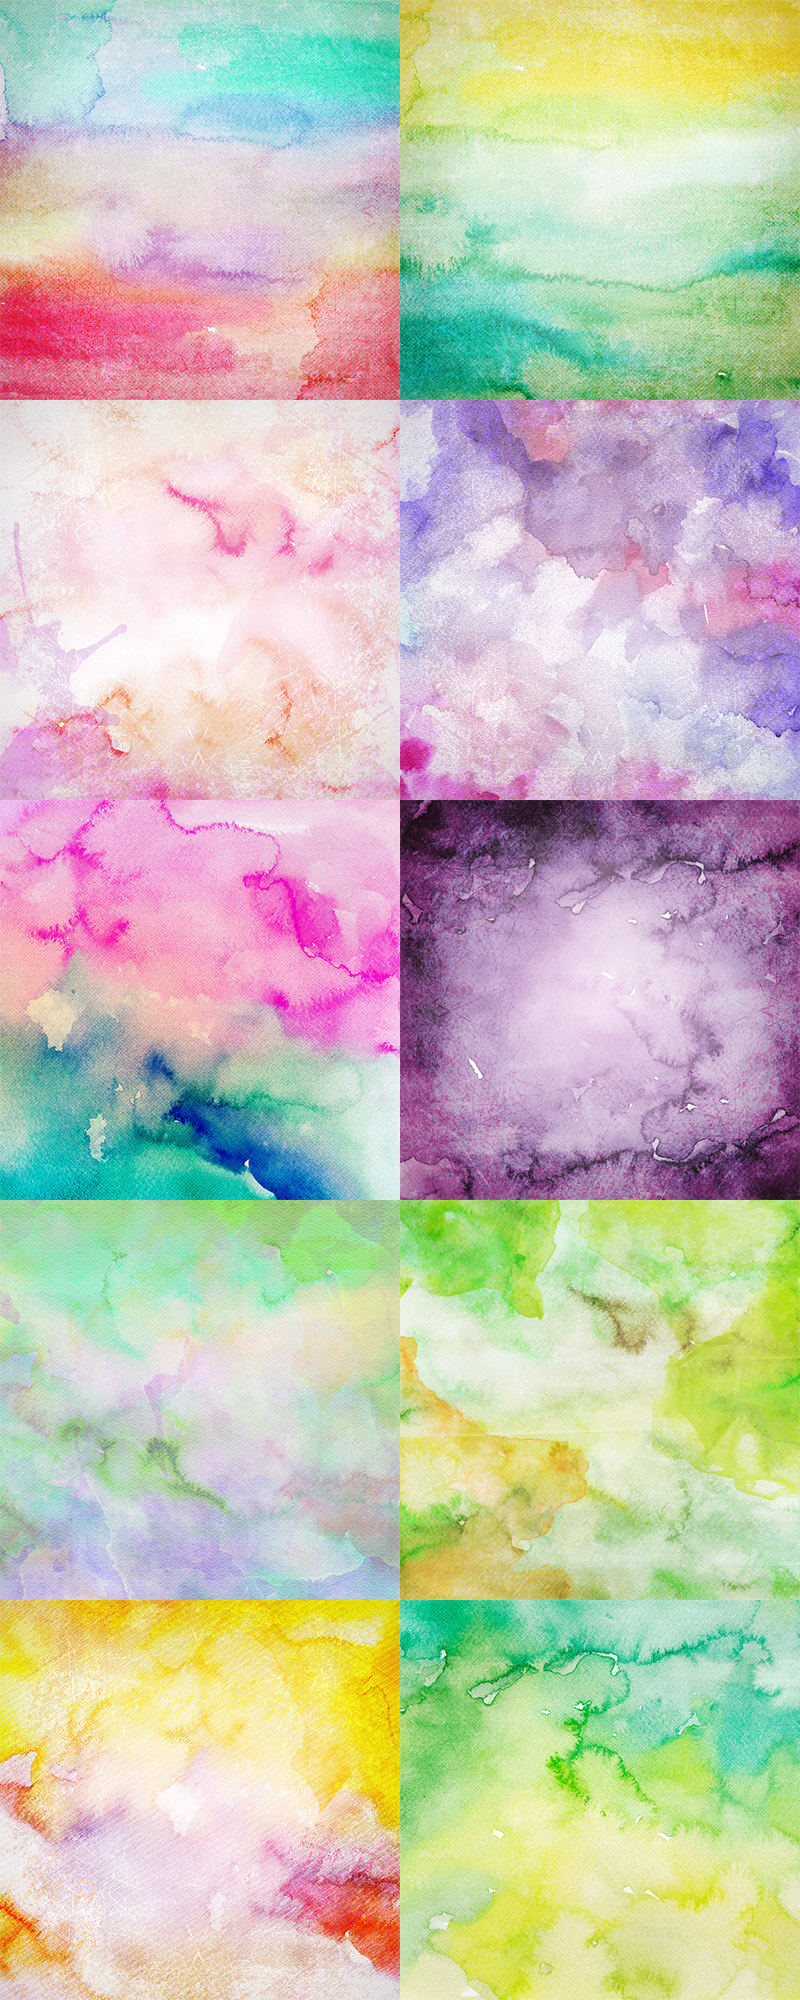 10 Watercolor Textures Preview 01